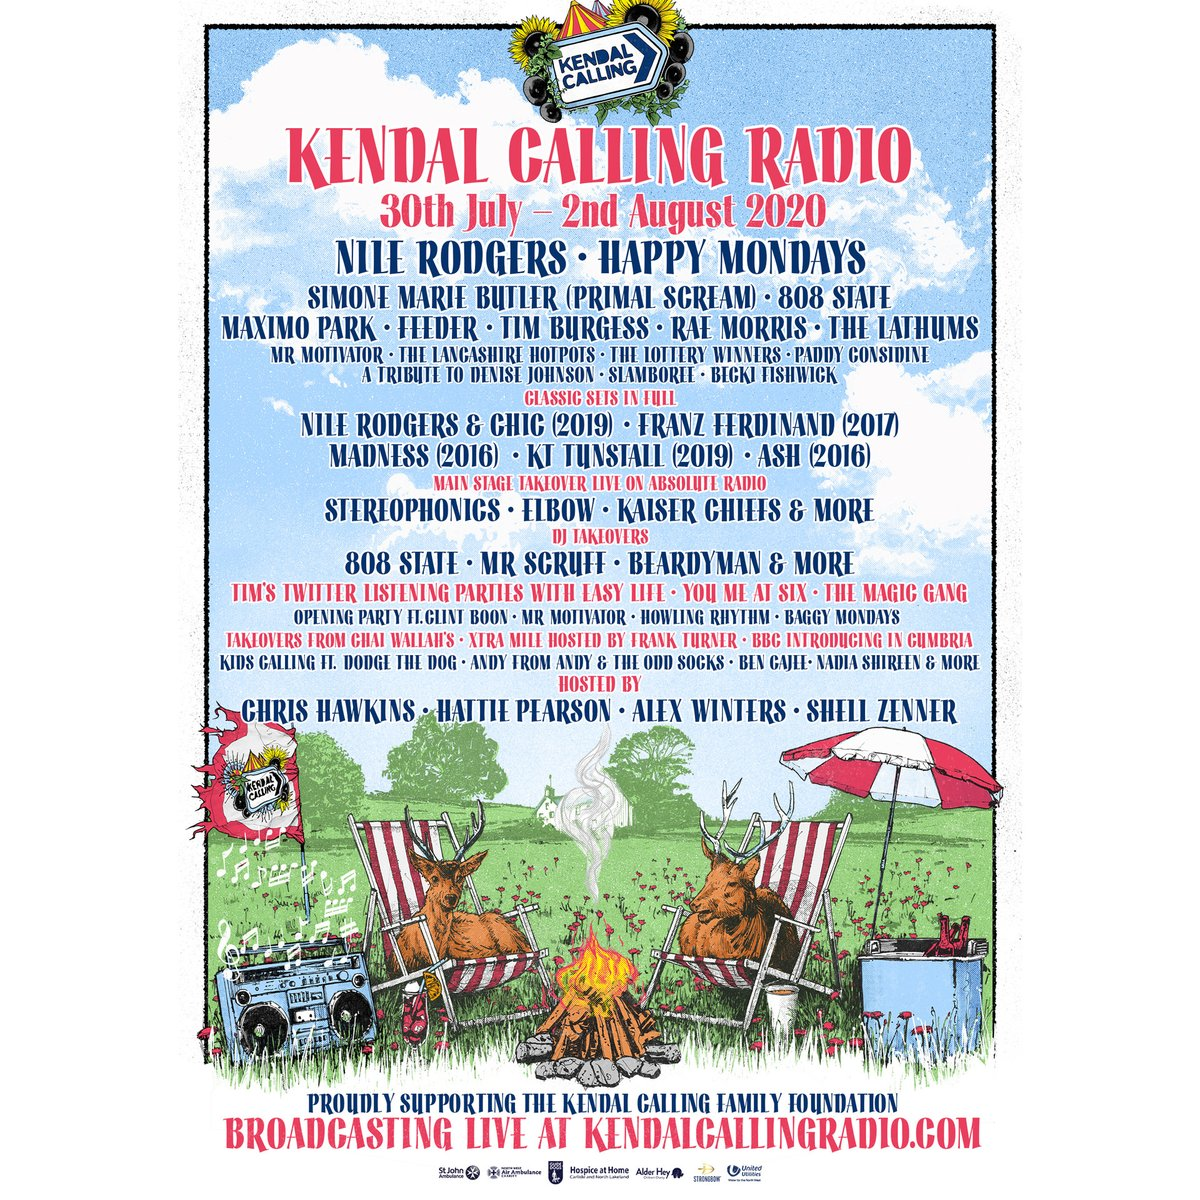 Delighted to announce #NileRodgersAndCHIC will be part of @KendalCalling this weekend!  Check out an exclusive interview with @hattiepearson between 3-6pm UK time Friday, then the full #NileRodgers & #CHIC set at 8:30pm Friday.  Head to https://t.co/520pdN4Cc6 to find out more! https://t.co/oxLoDKoGom